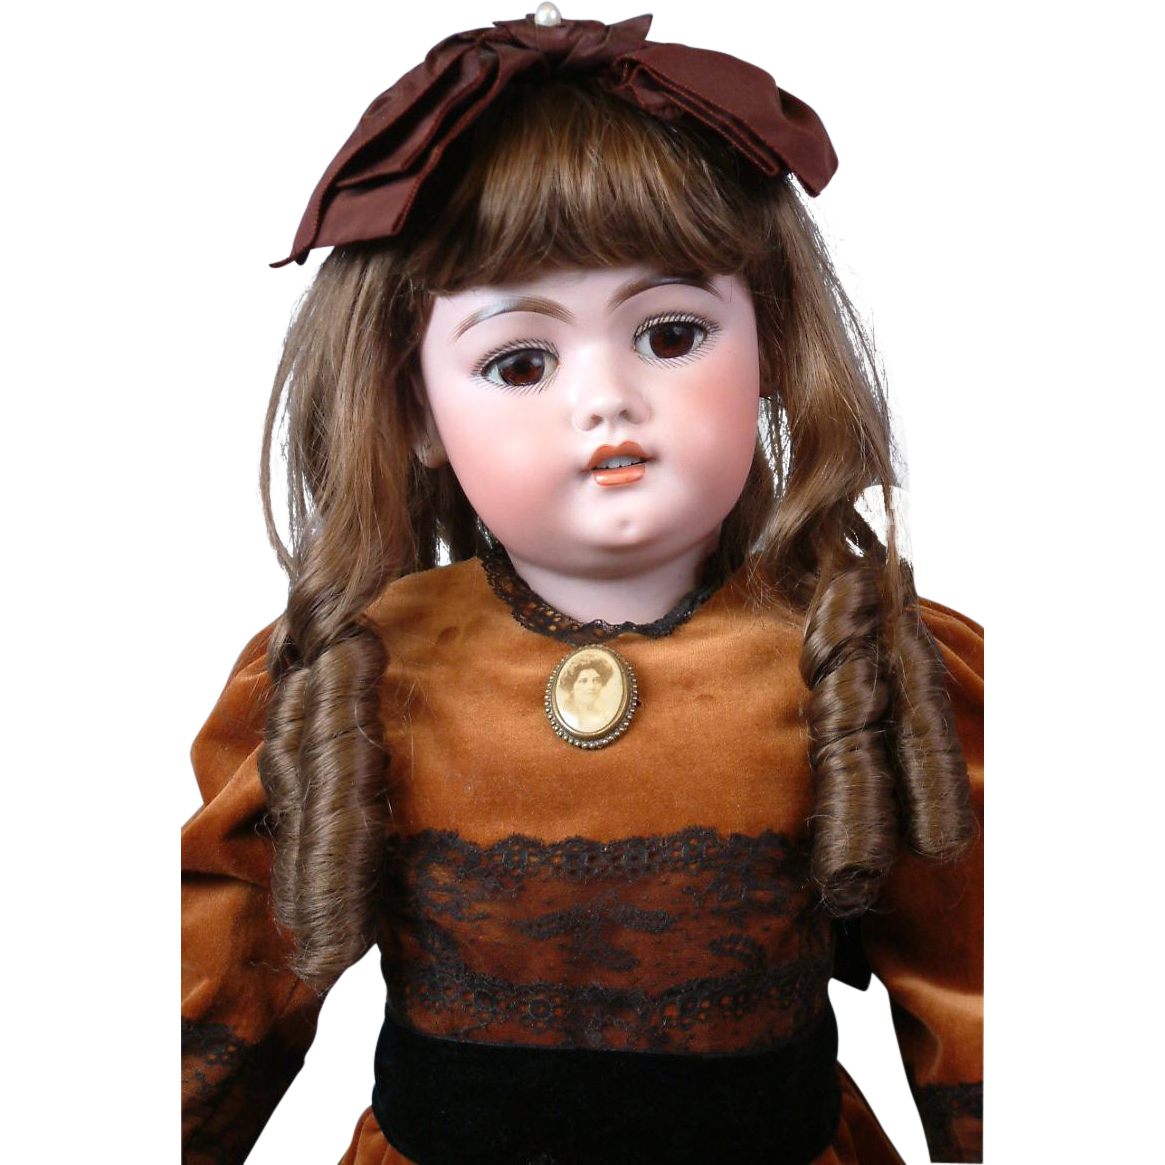 "SIMON & HALBIG Early 1079 26.5"" Antique Bisque Doll w/Orig Finish Early Unmarked Body & Nice Velvet Costume"